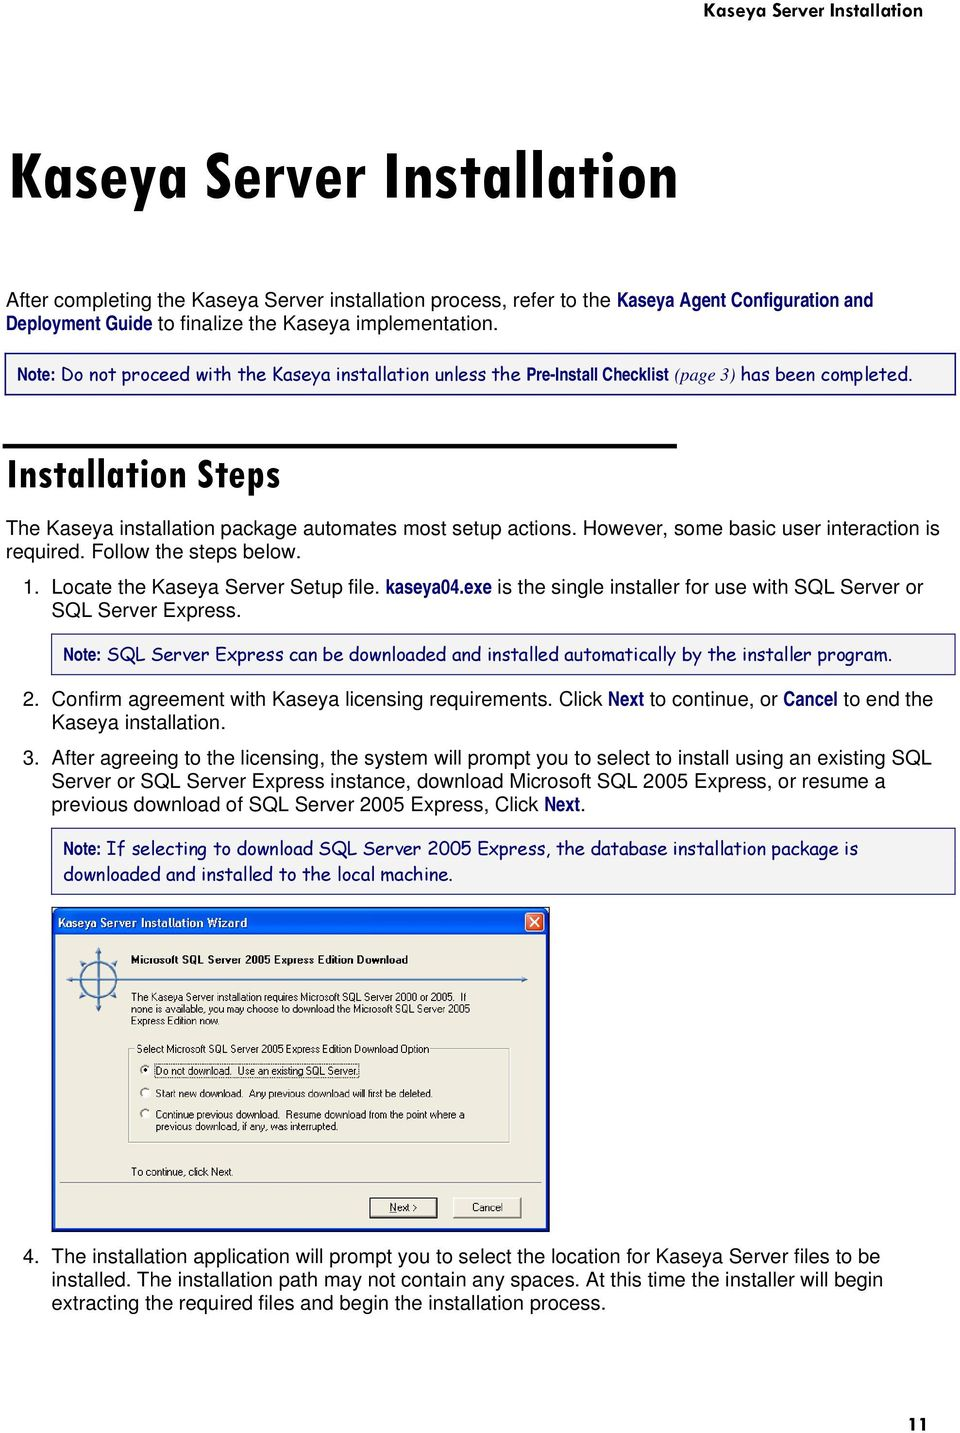 Installation Steps The Kaseya installation package automates most setup actions. However, some basic user interaction is required. Follow the steps below. 1. Locate the Kaseya Server Setup file.